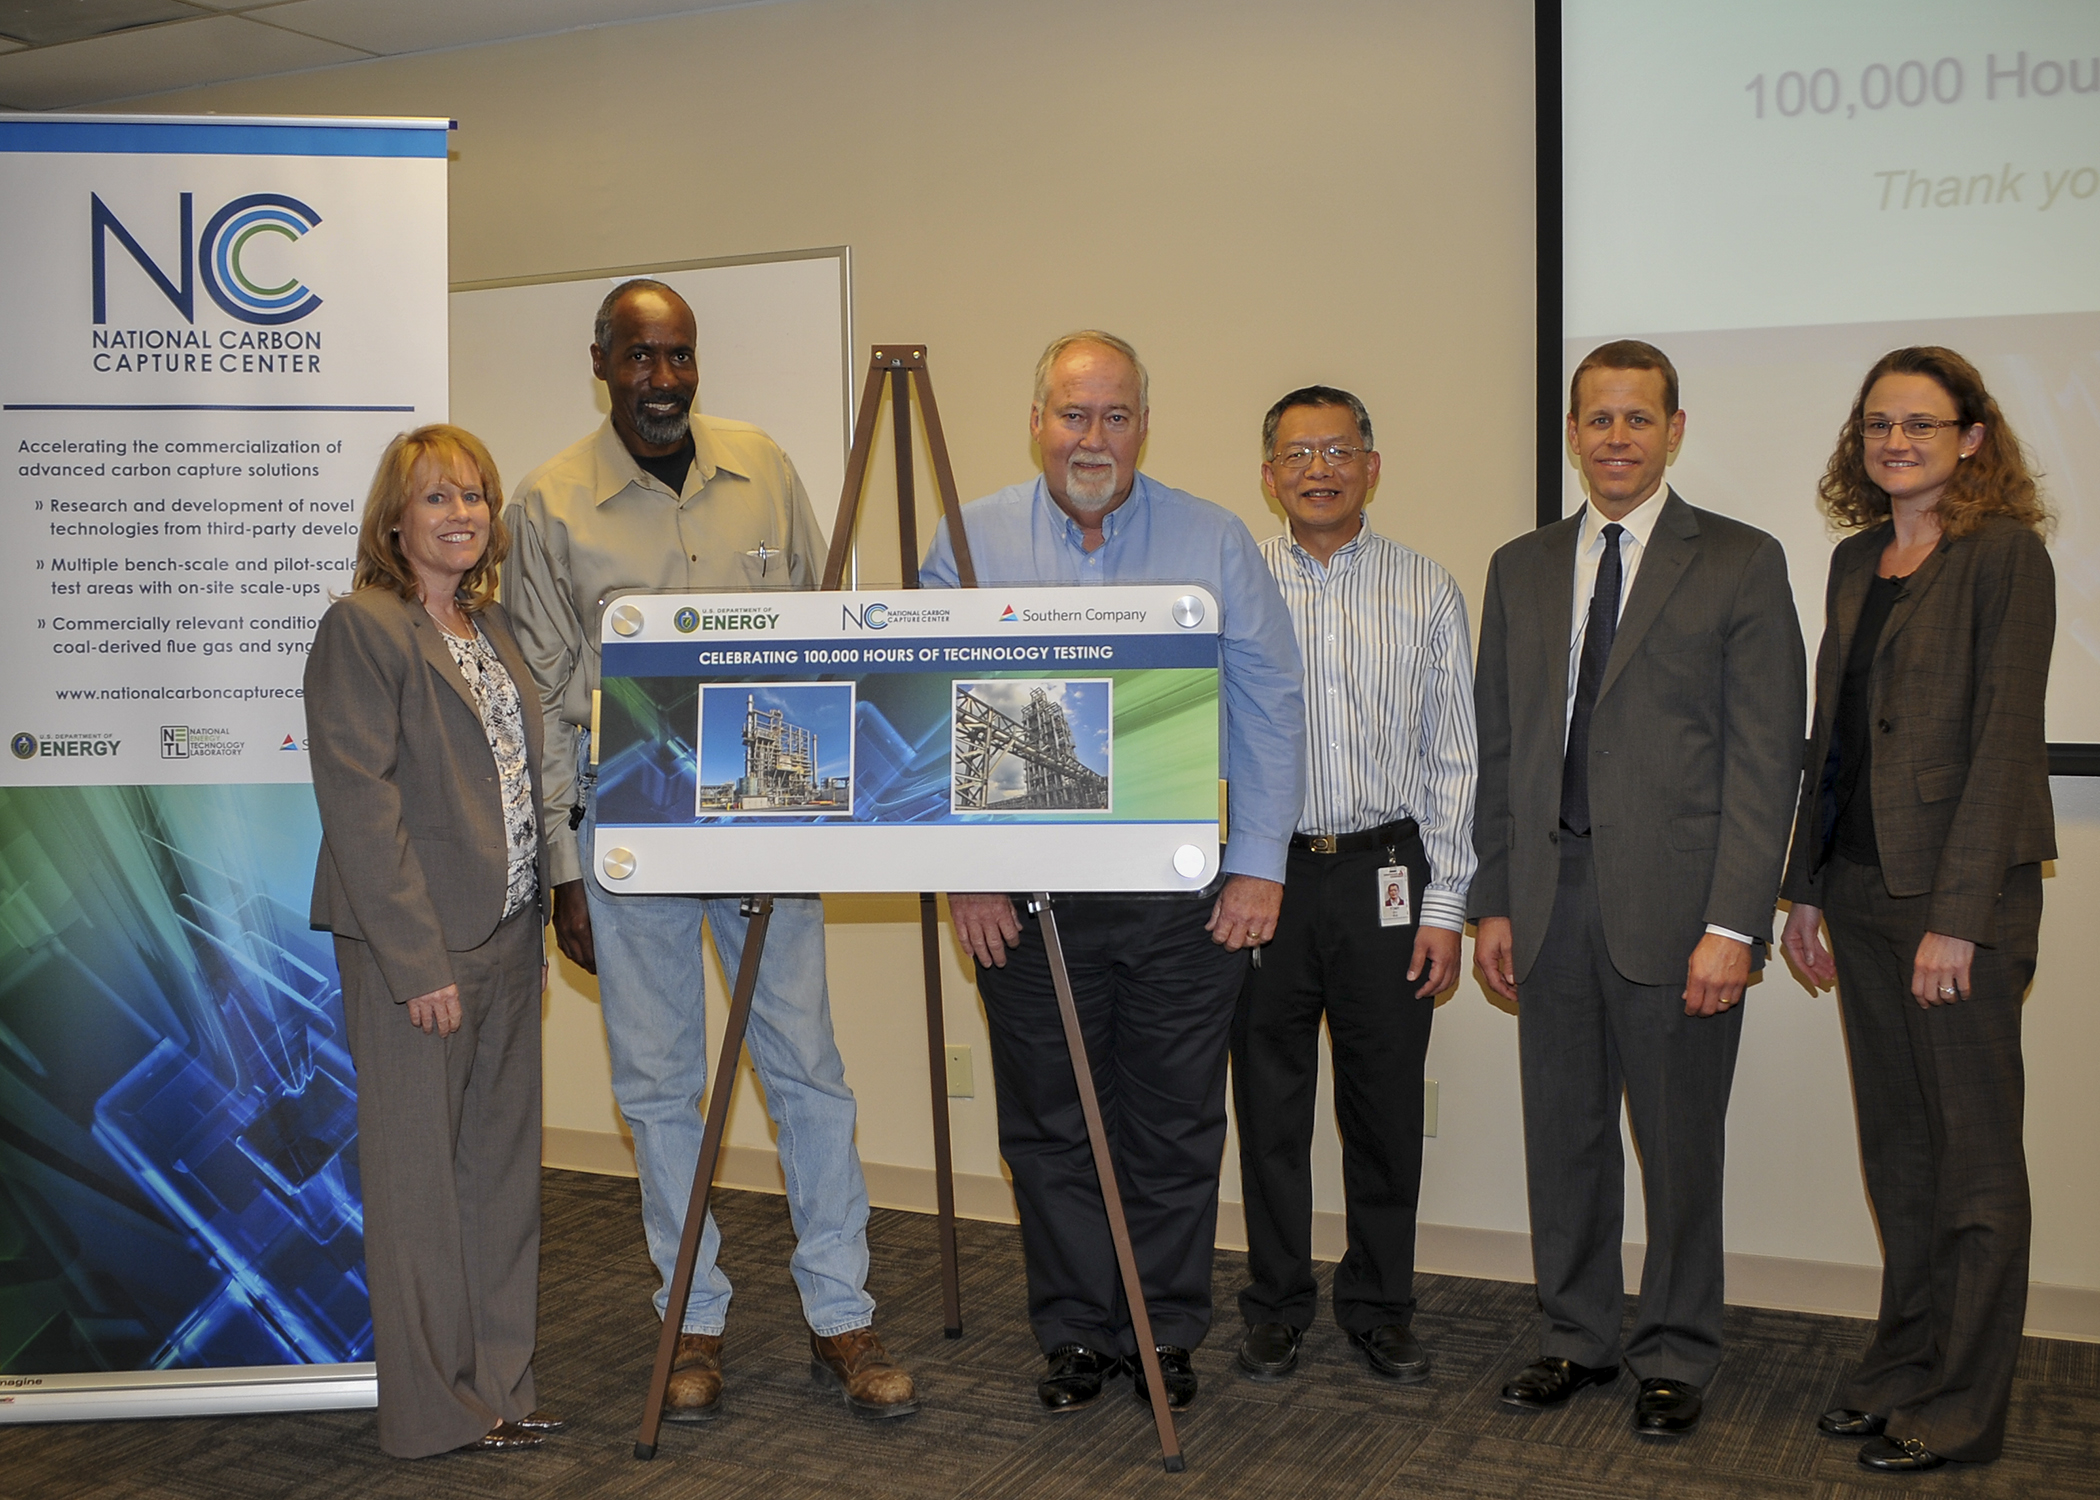 (L-R) Employees Michele Corser, James Woods, David Mims and Tony Wu accept a commemorative graphic from Alabama Power Senior Production Officer Jim Heilbron and Roxann Walsh, director of reduced-carbon, renewable and distributed energy R&D.